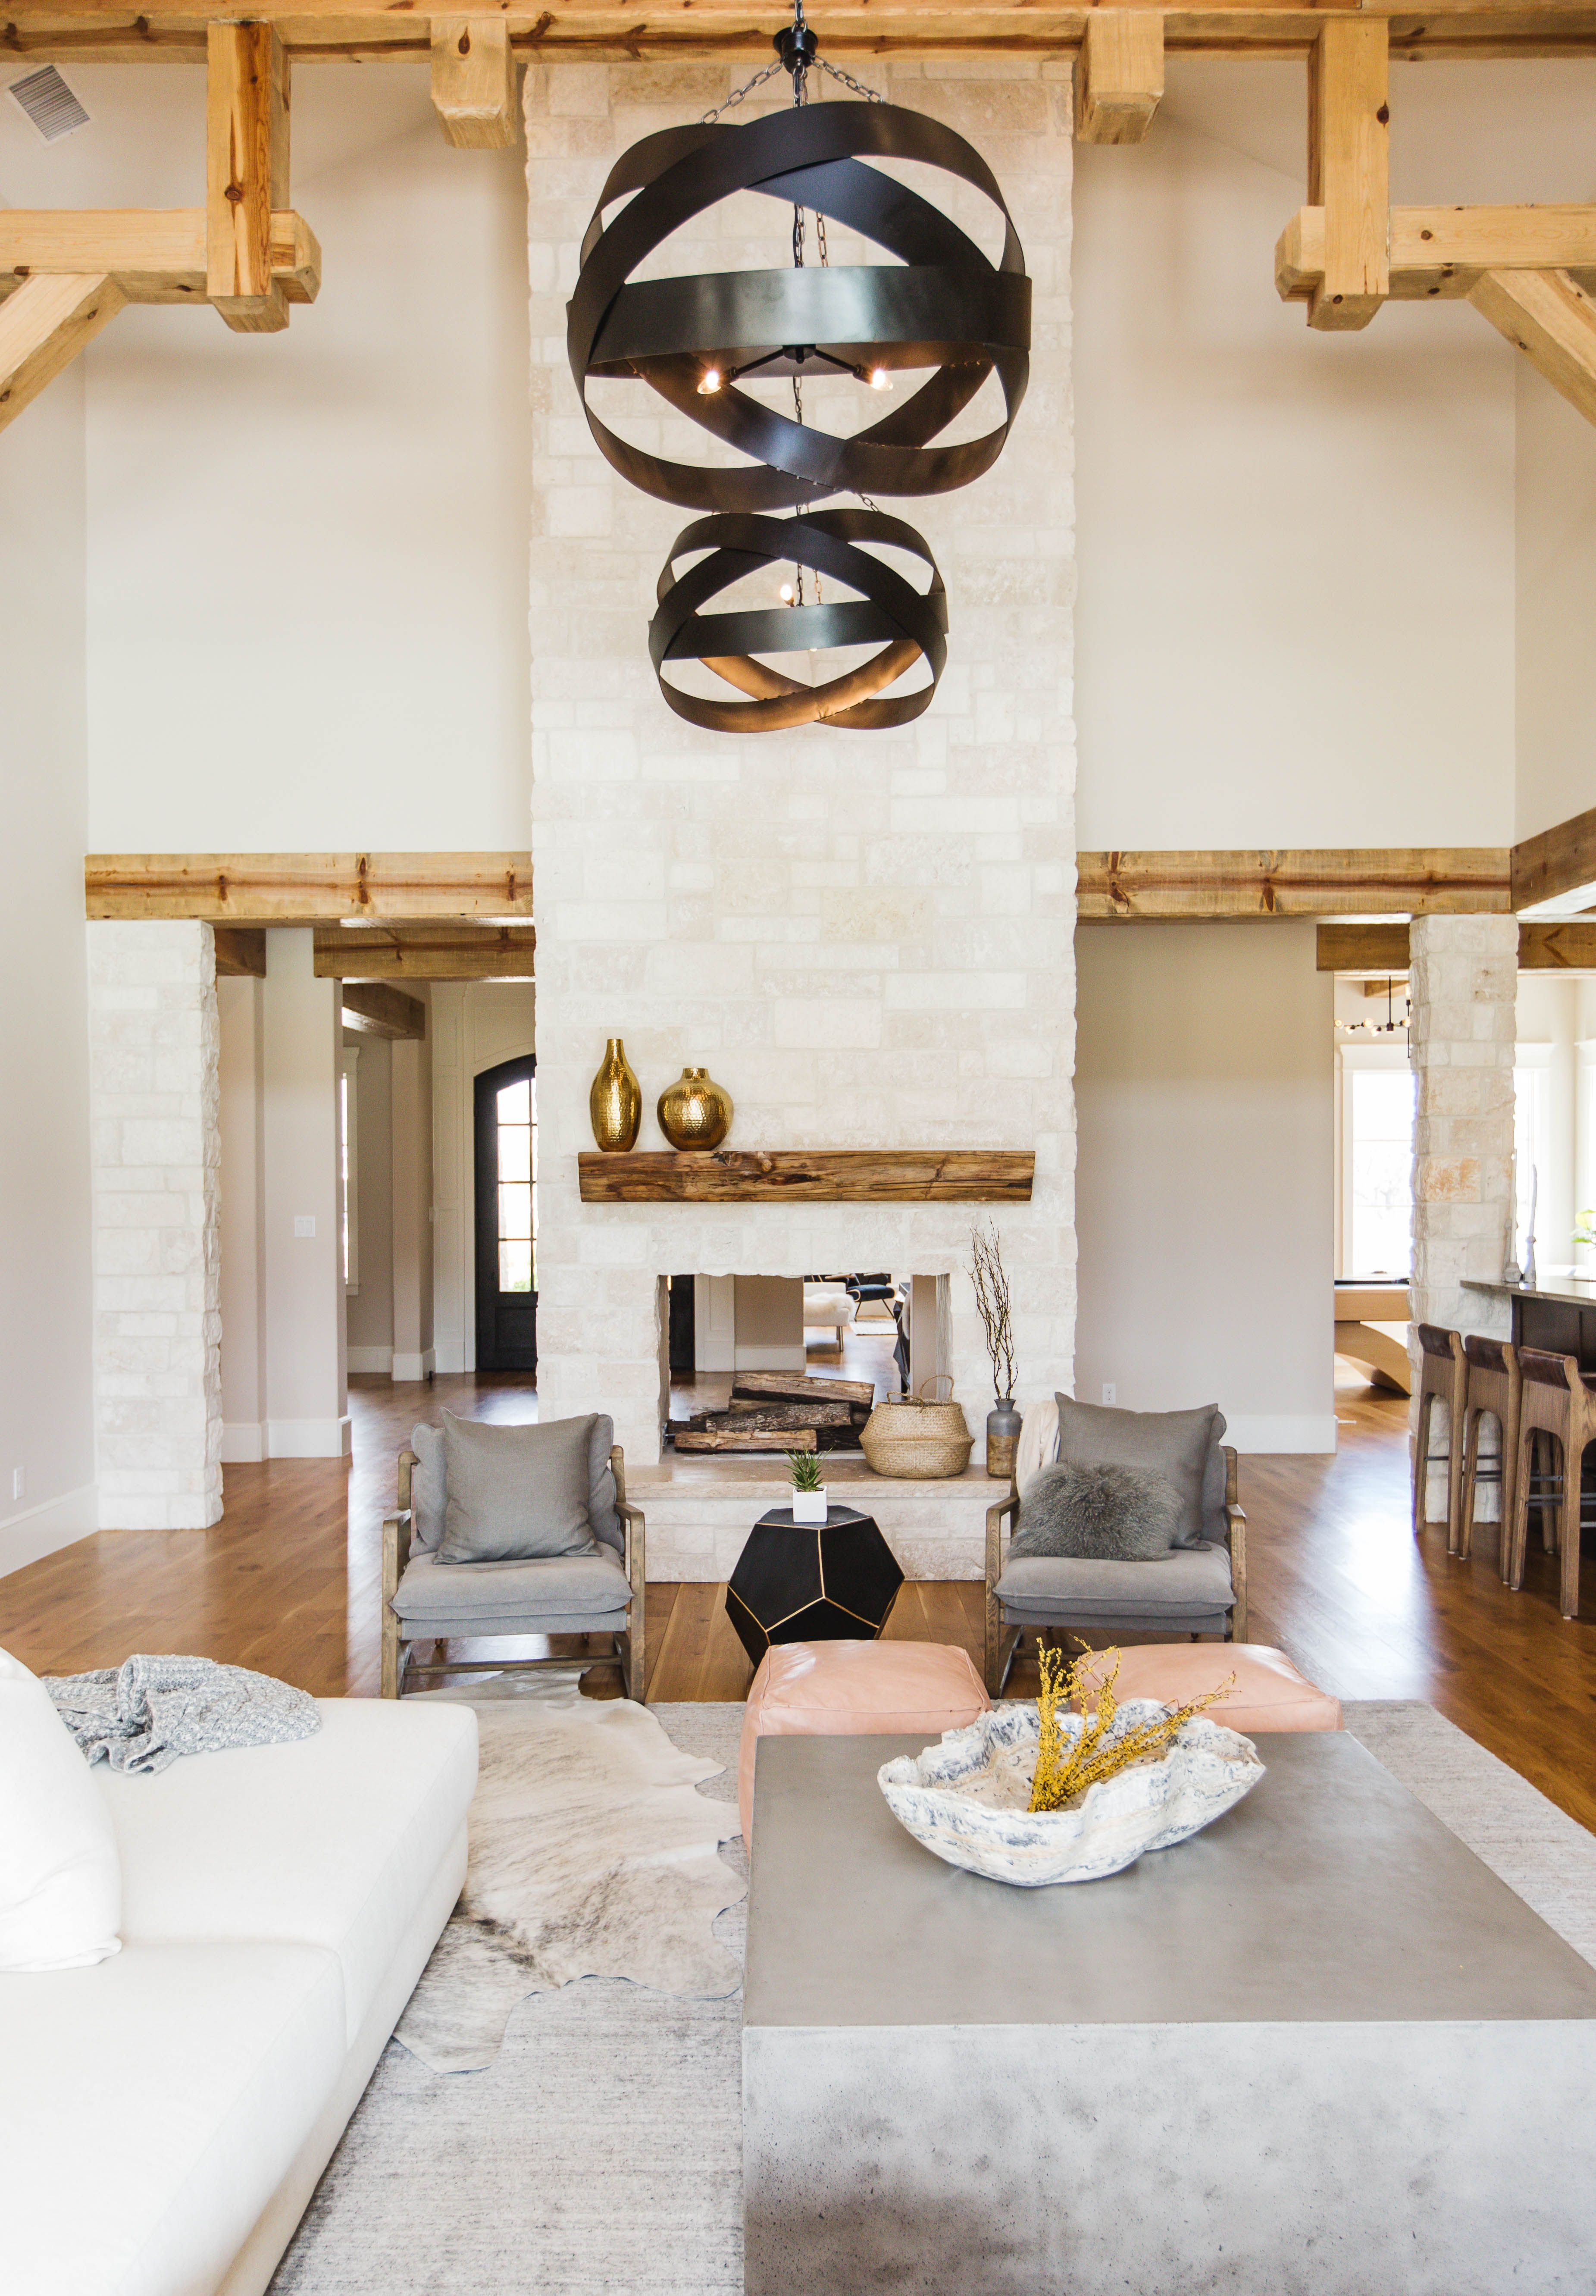 High Ceilings Dressed With Eye Catching Lighting Draw The Eye